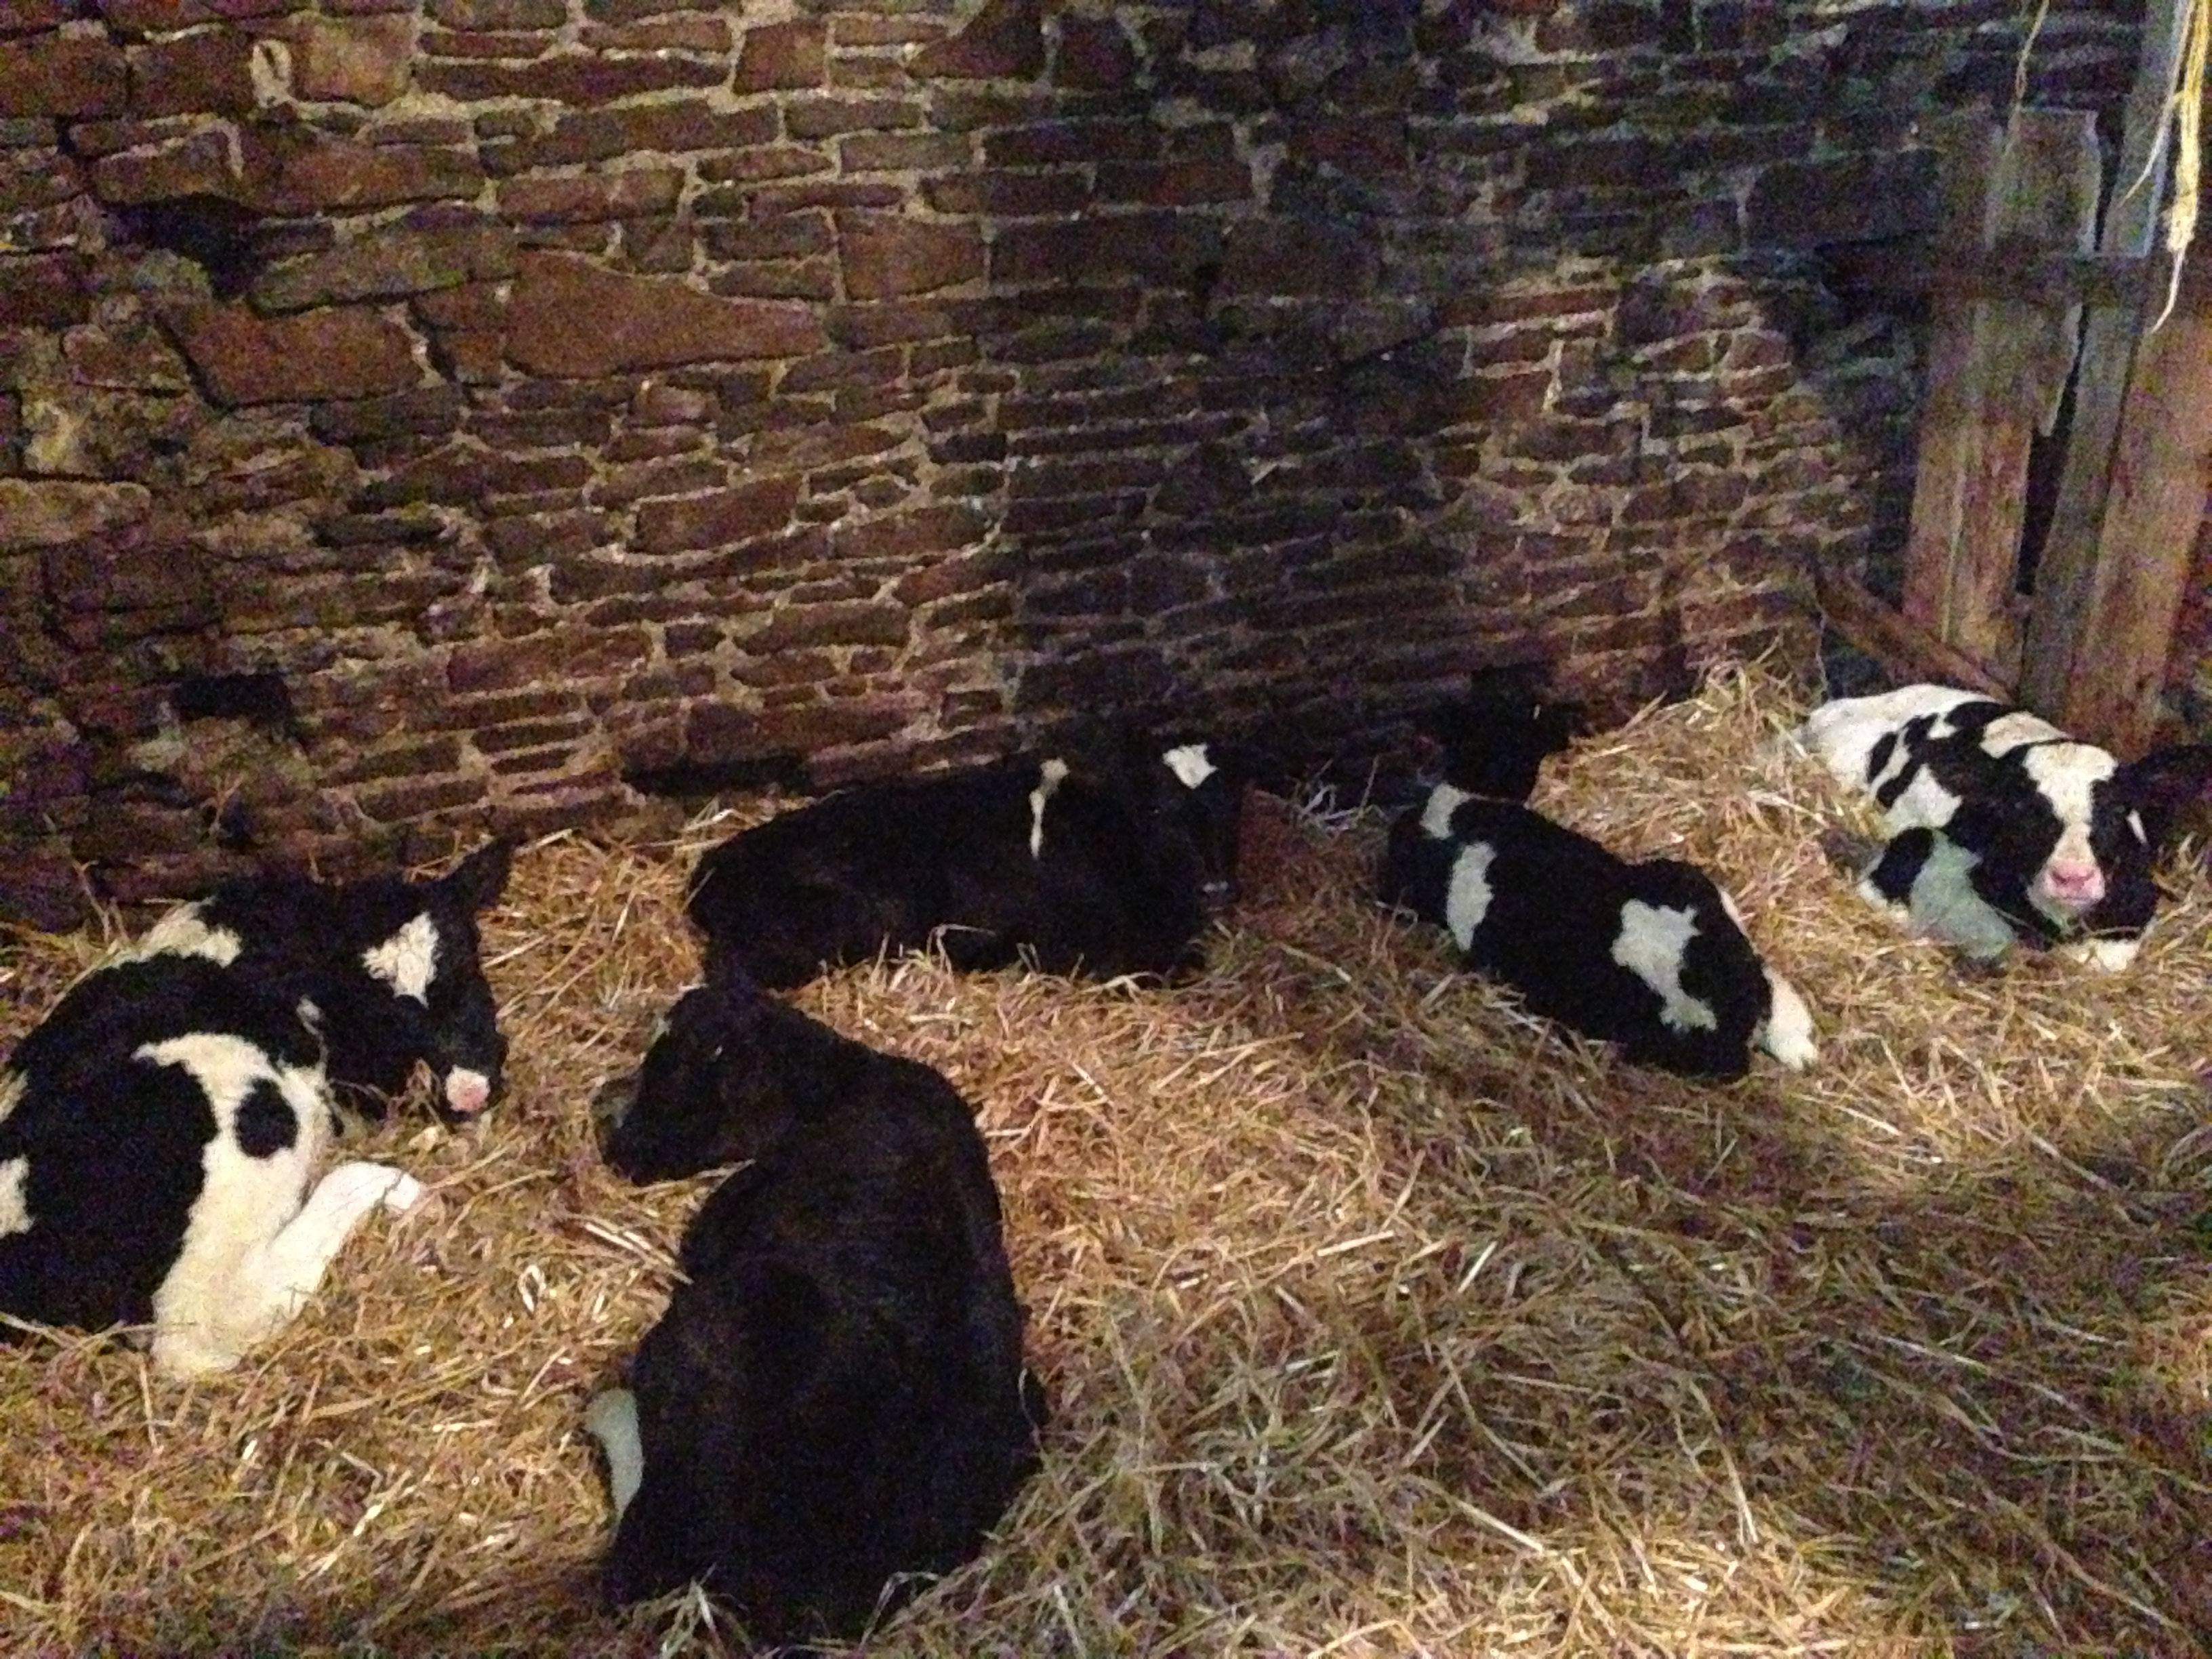 Calves having a nap after being fed